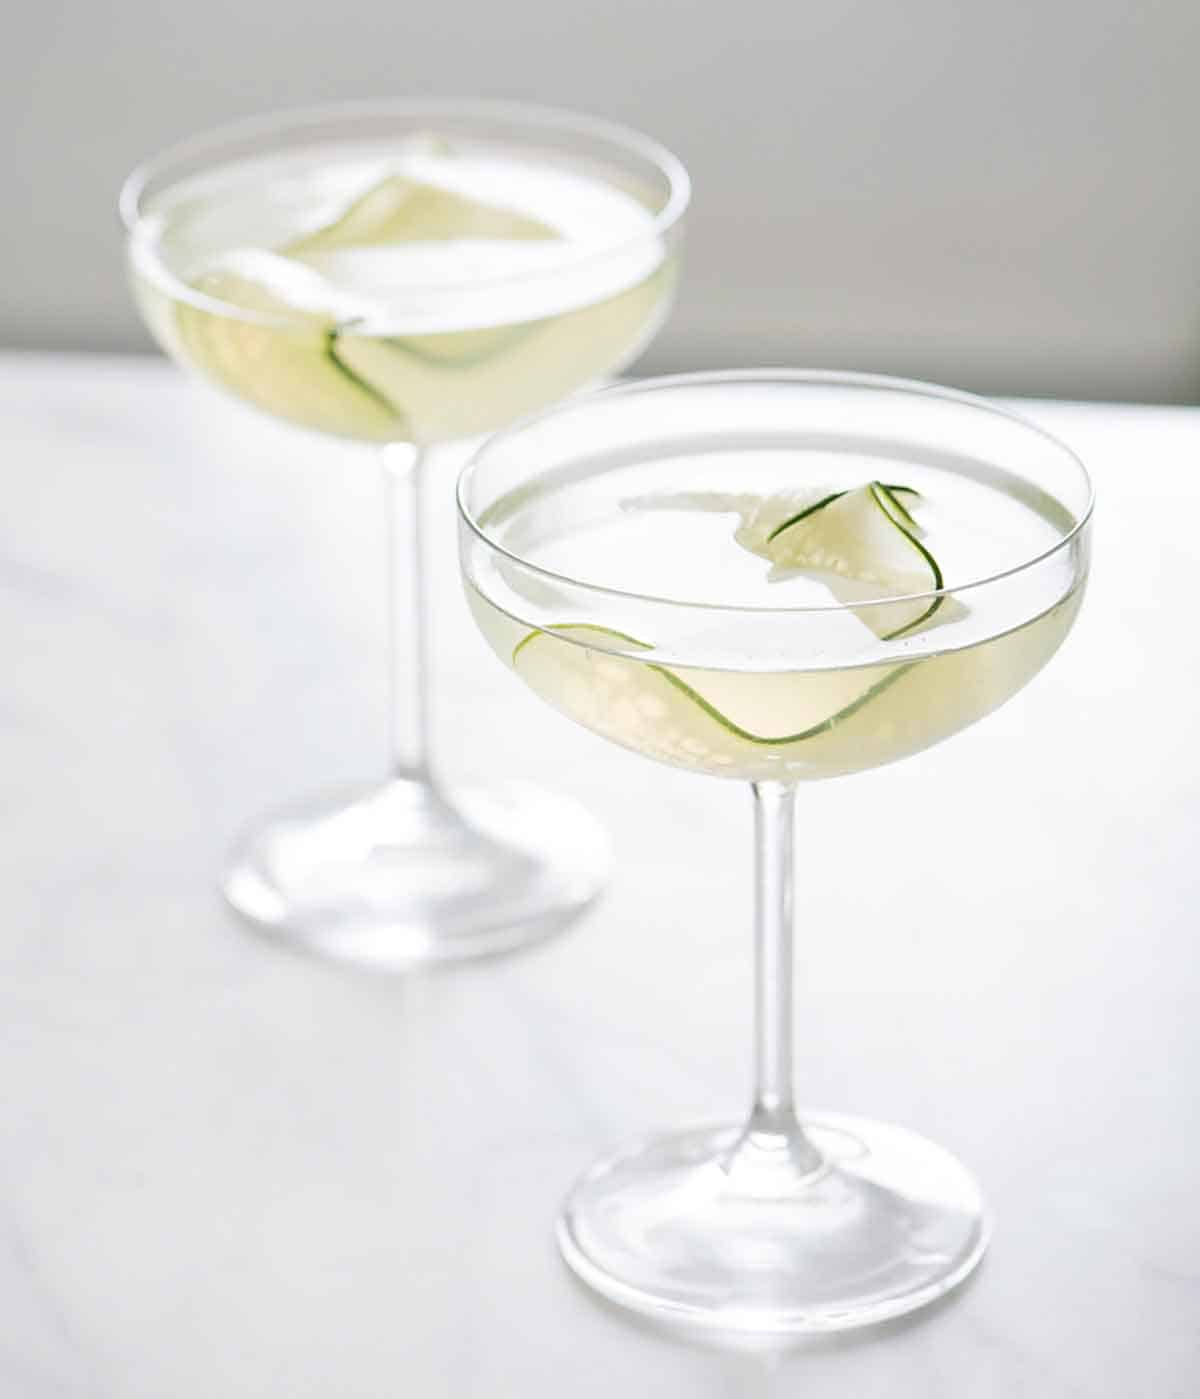 Two glasses of cucumber martini with sliced cucumber as garnish.